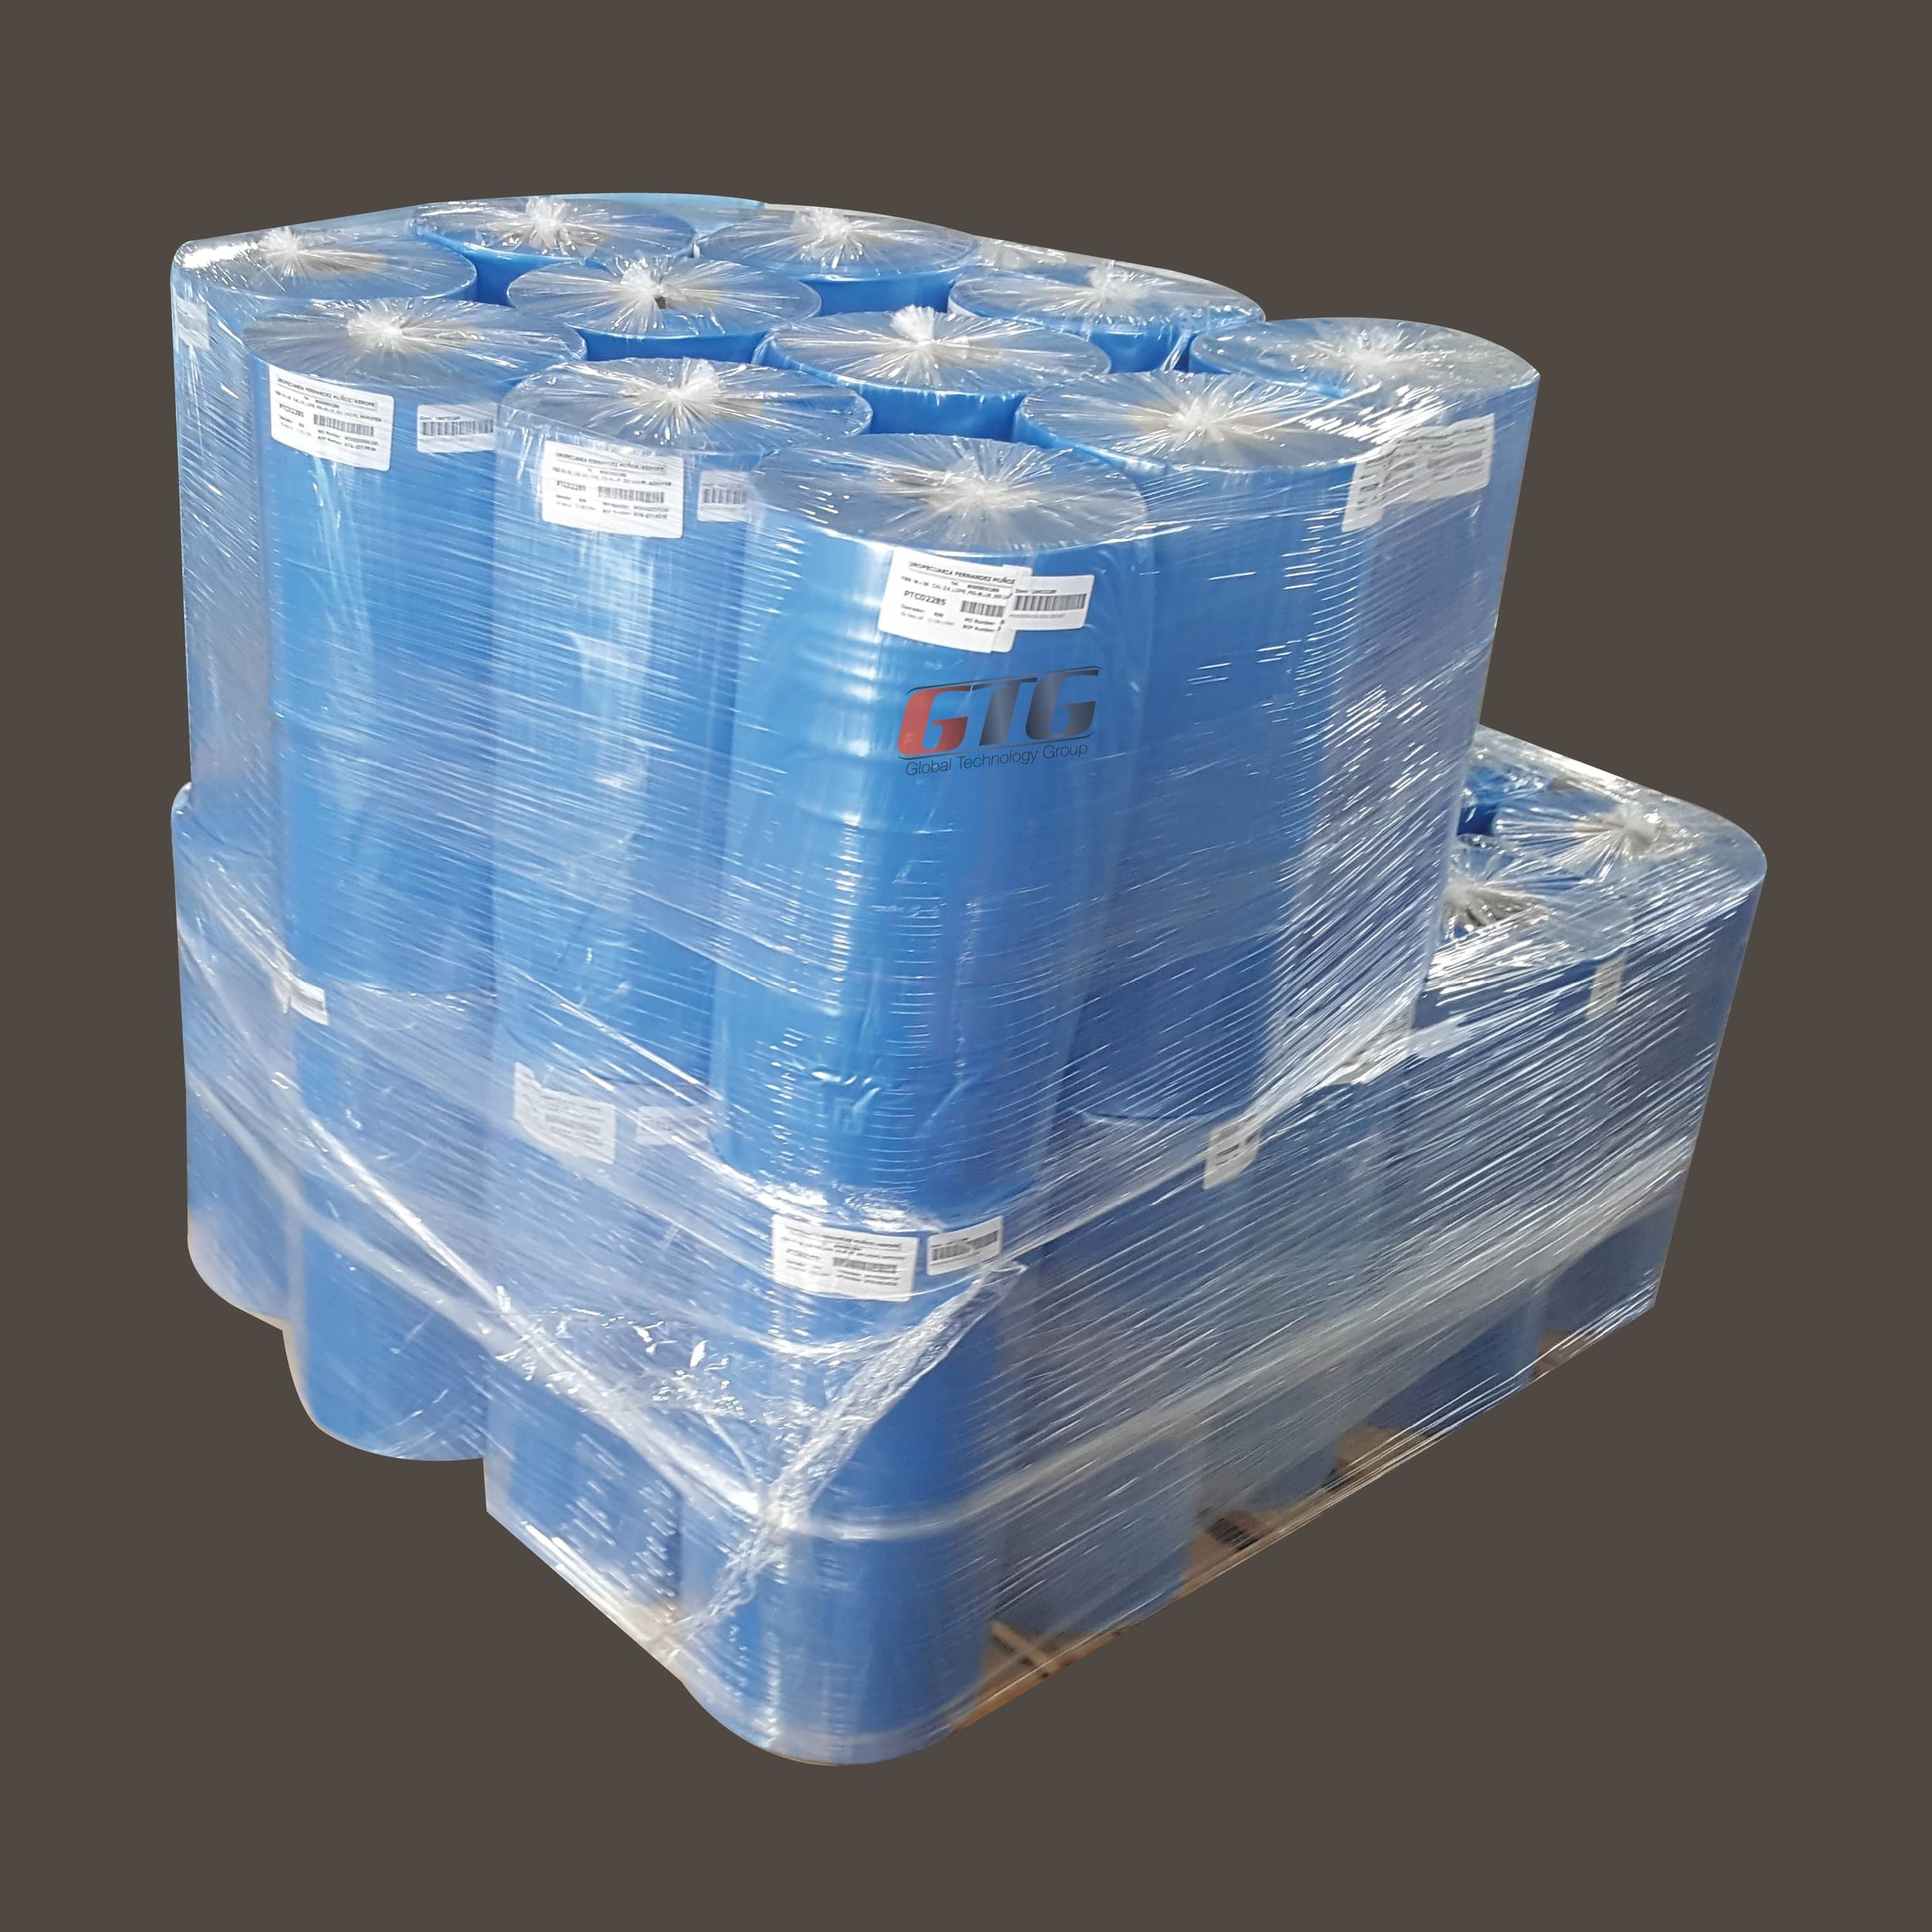 Pigmented rolls and bags